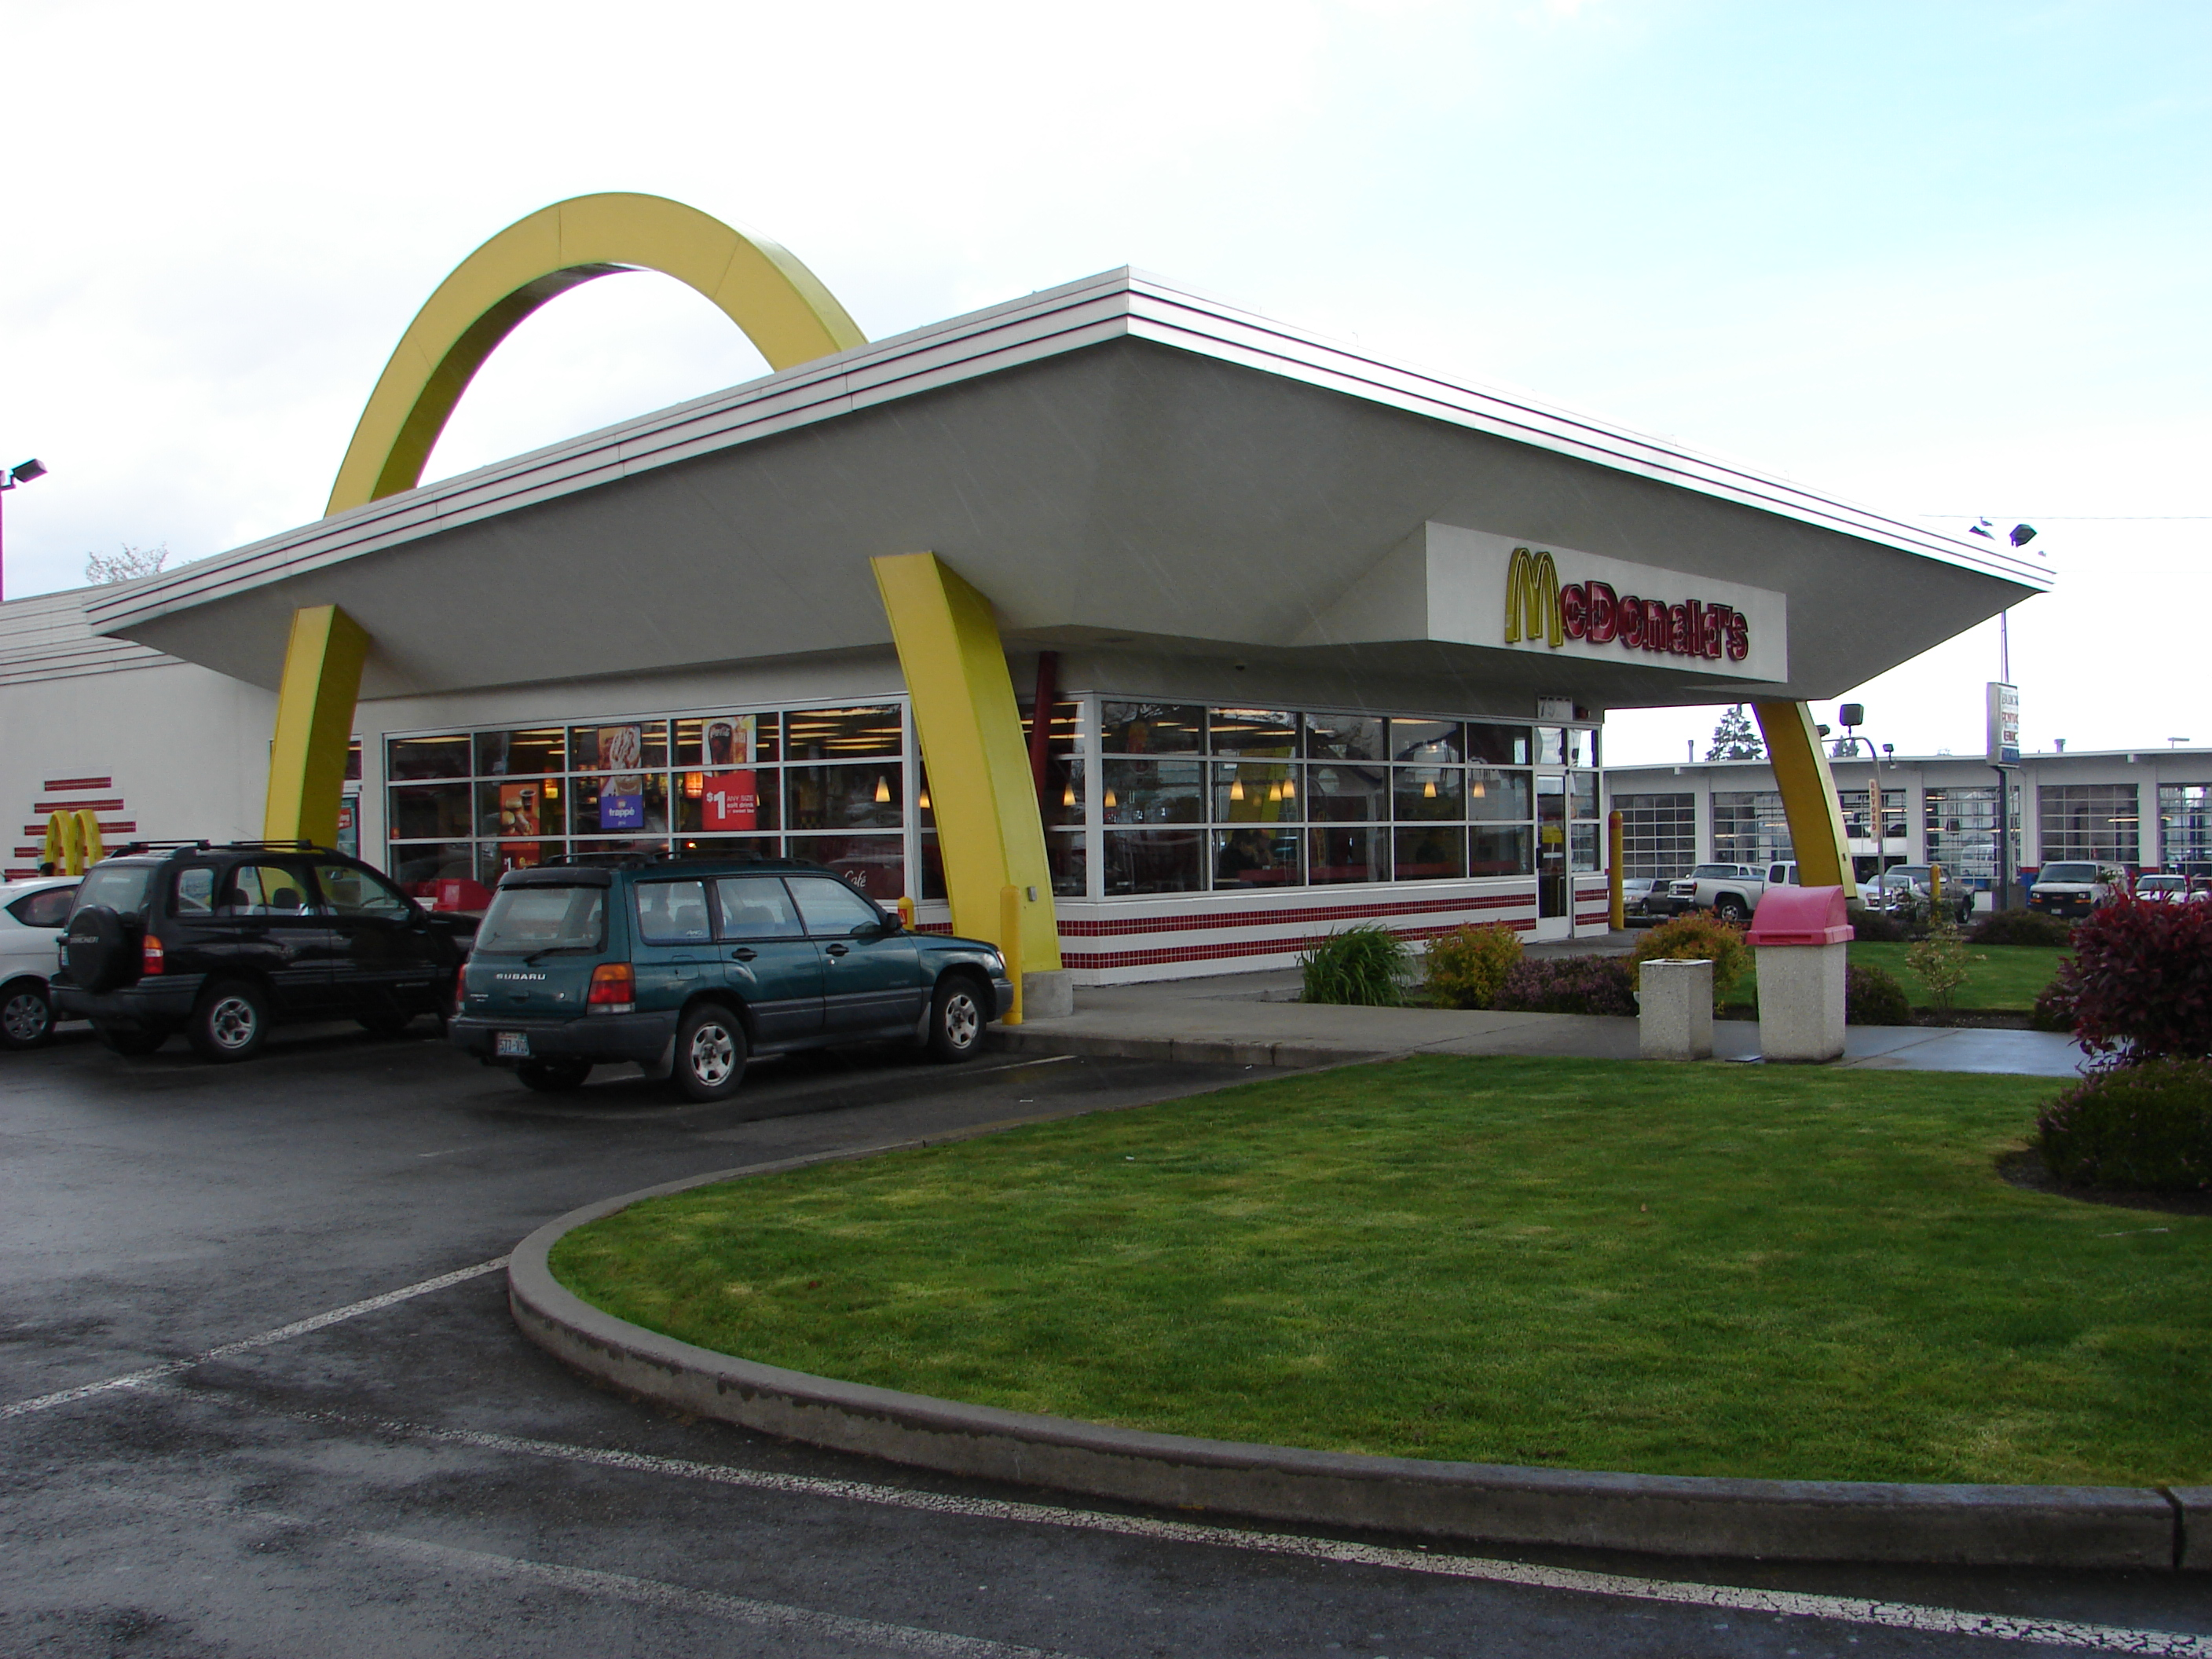 McDonalds New Stores and Repairs.